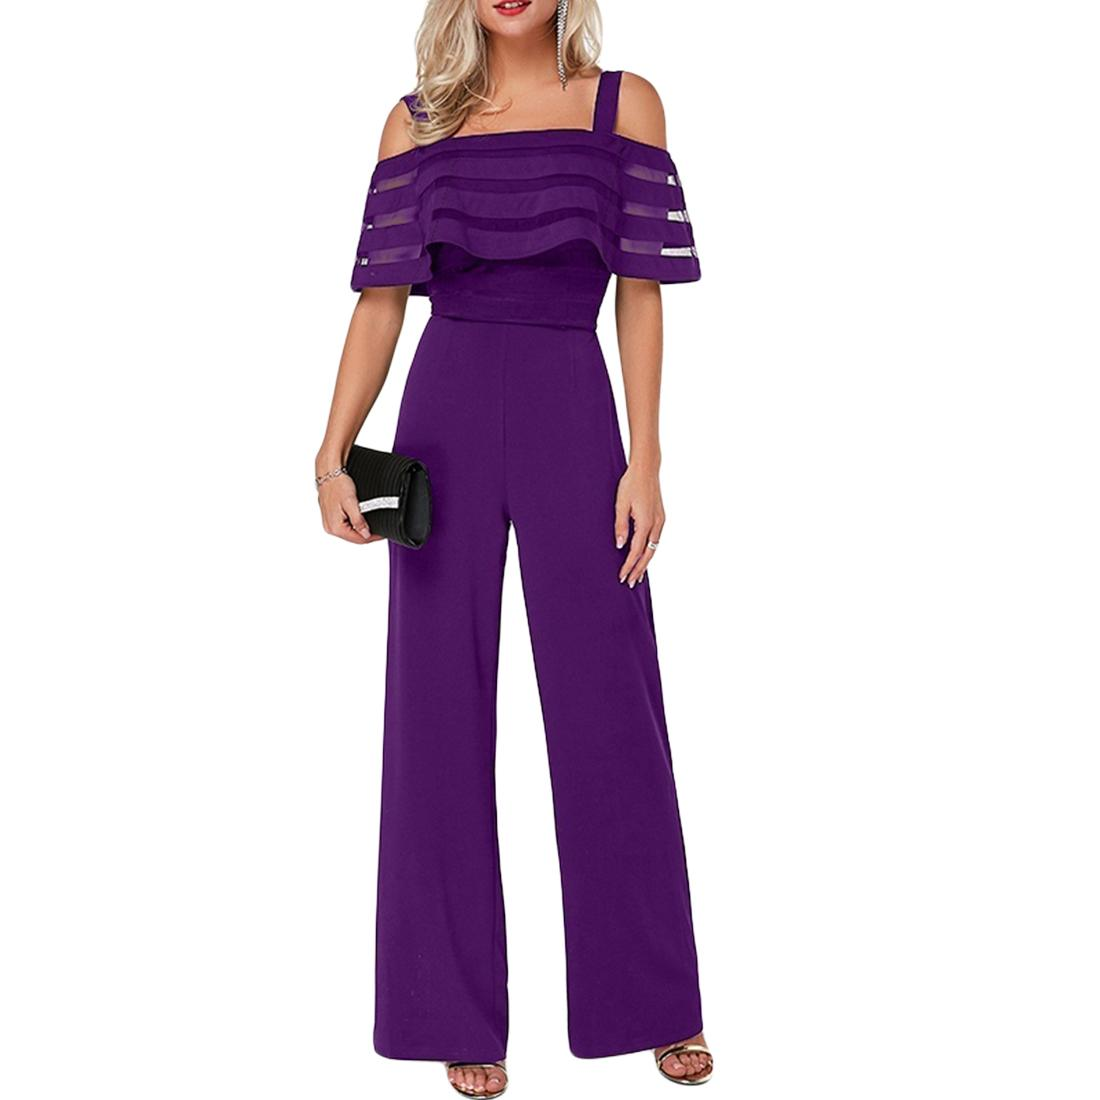 Sexy Women Jumpsuit Off Shoulder Plus Size Summer Romper Wide Leg Trousers Womens Casual Clubwear Outfits Blue OL Mesh Overalls T200107